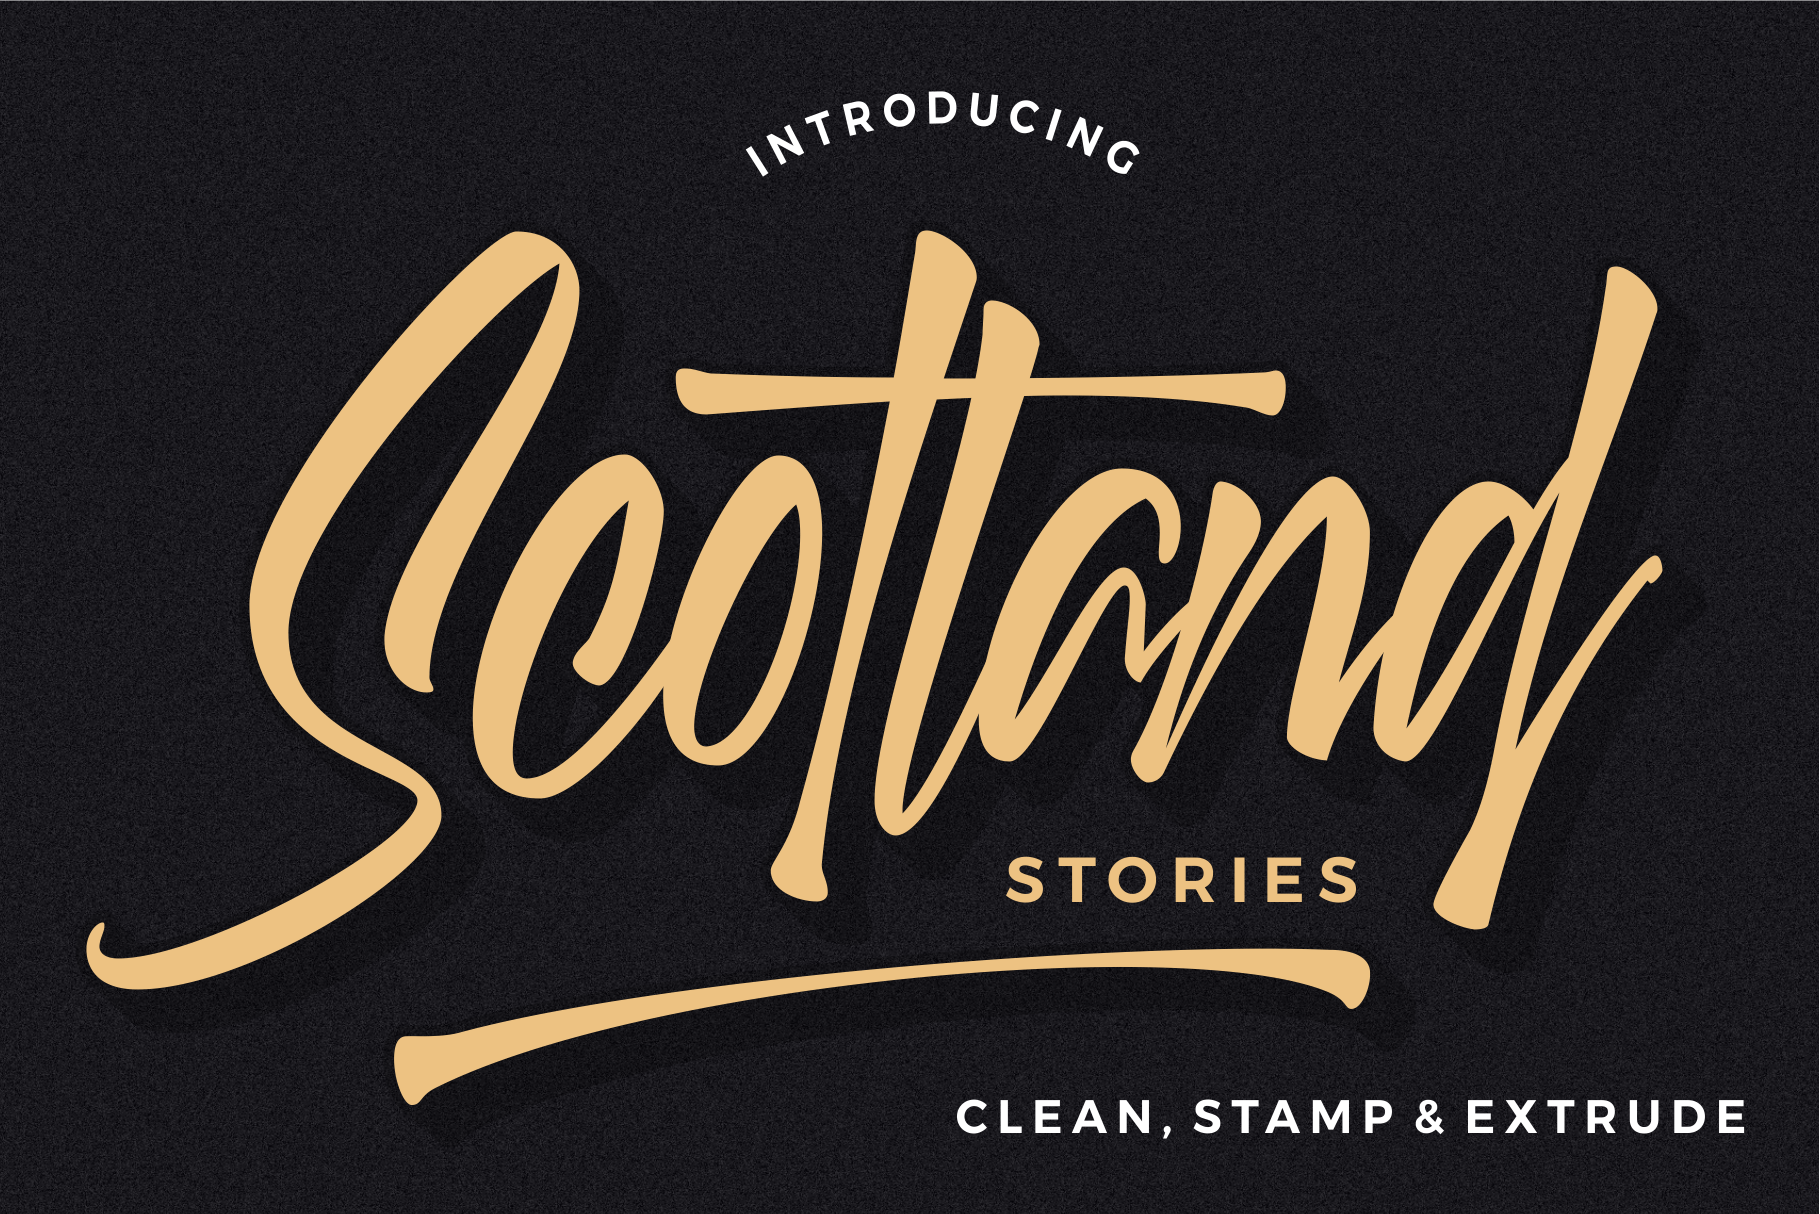 Scotland stories font Lettering, Lower case letters